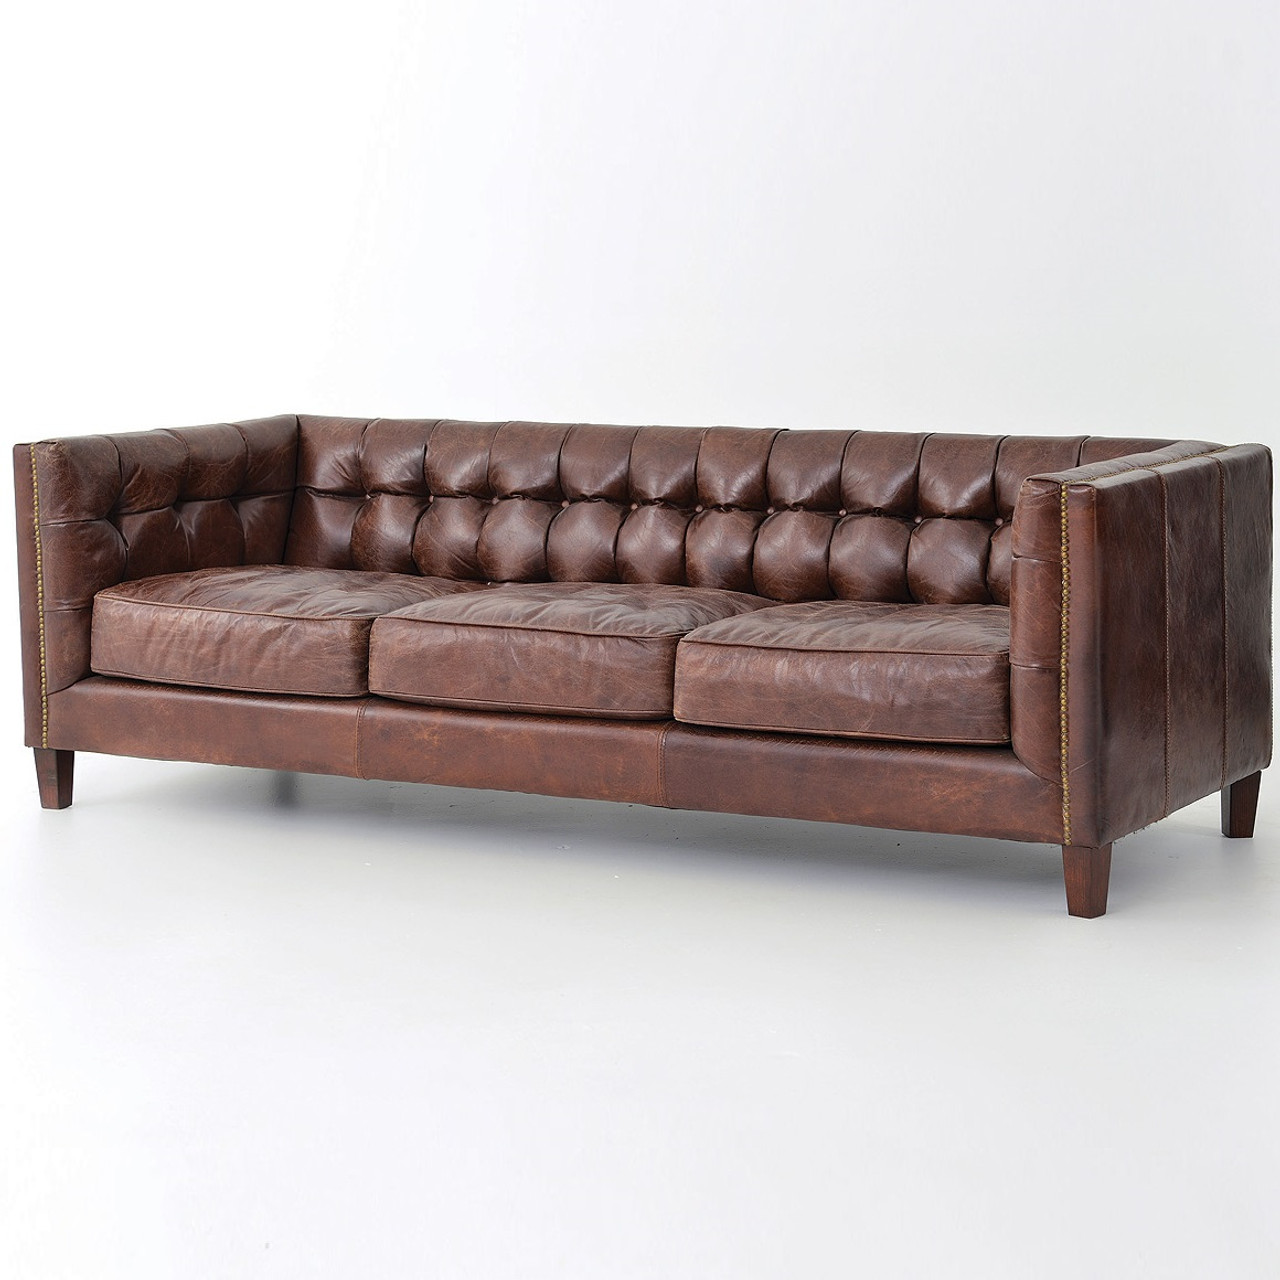 Awesome Abbott Vintage Cigar Tufted Leather Sofa